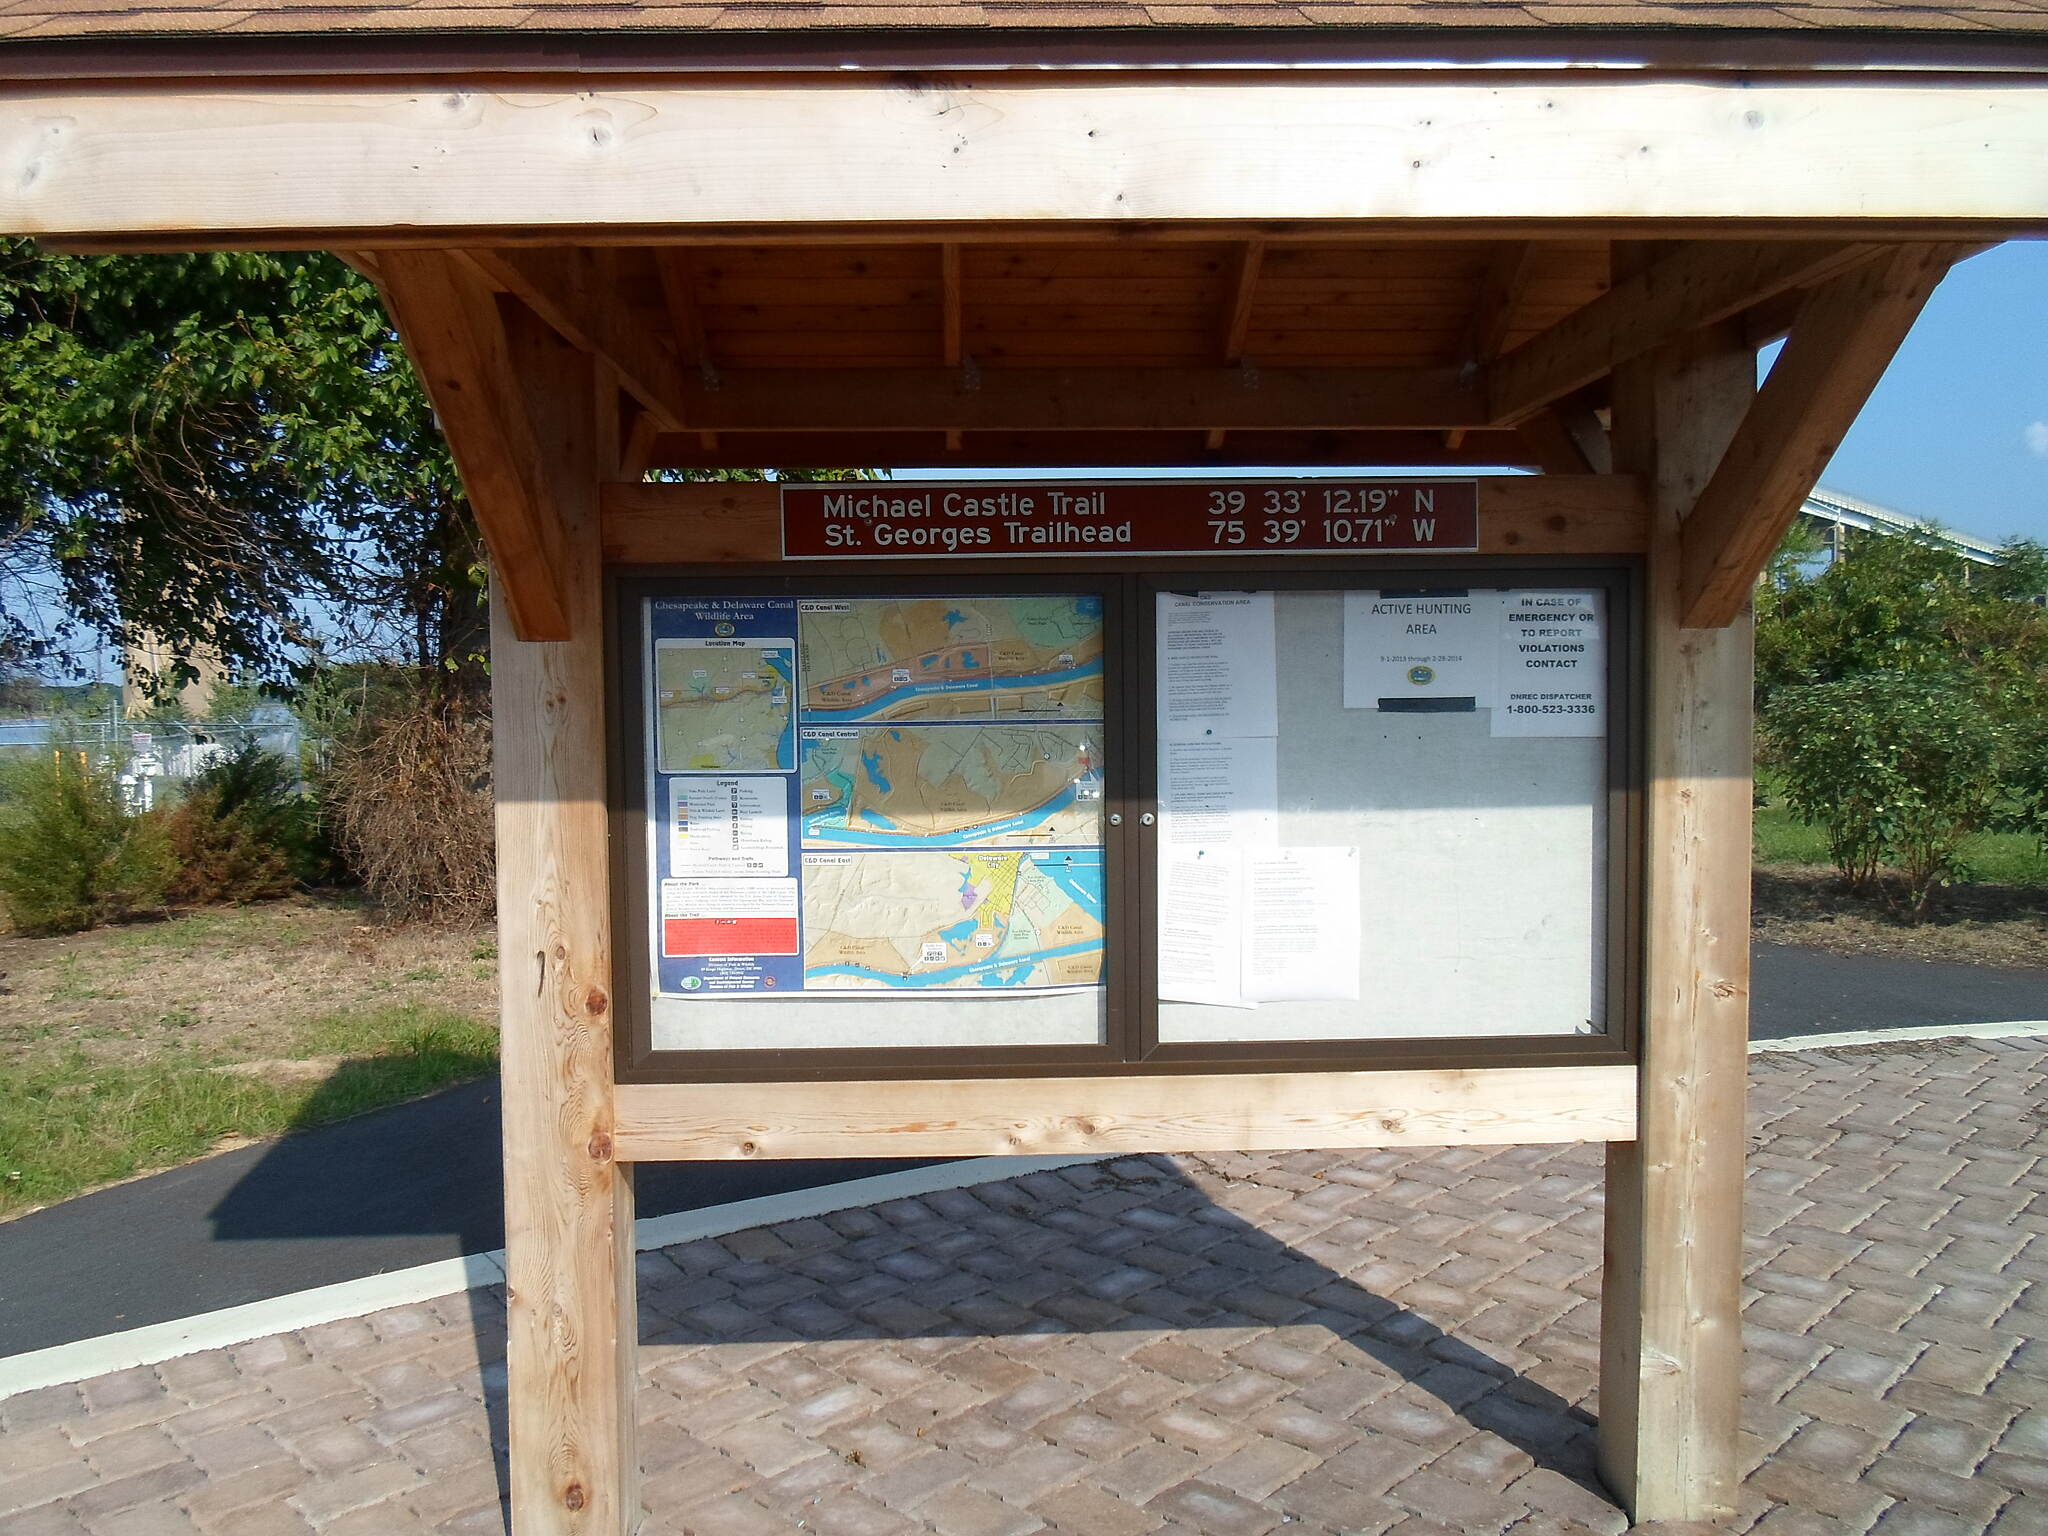 Michael Castle Trail Michael Castle Trail Kiosk showing a map of existing and future segments of the trail, as well as the surrounding wildlife preservation area. Taken August 2014 at the St. Georges trailhead.